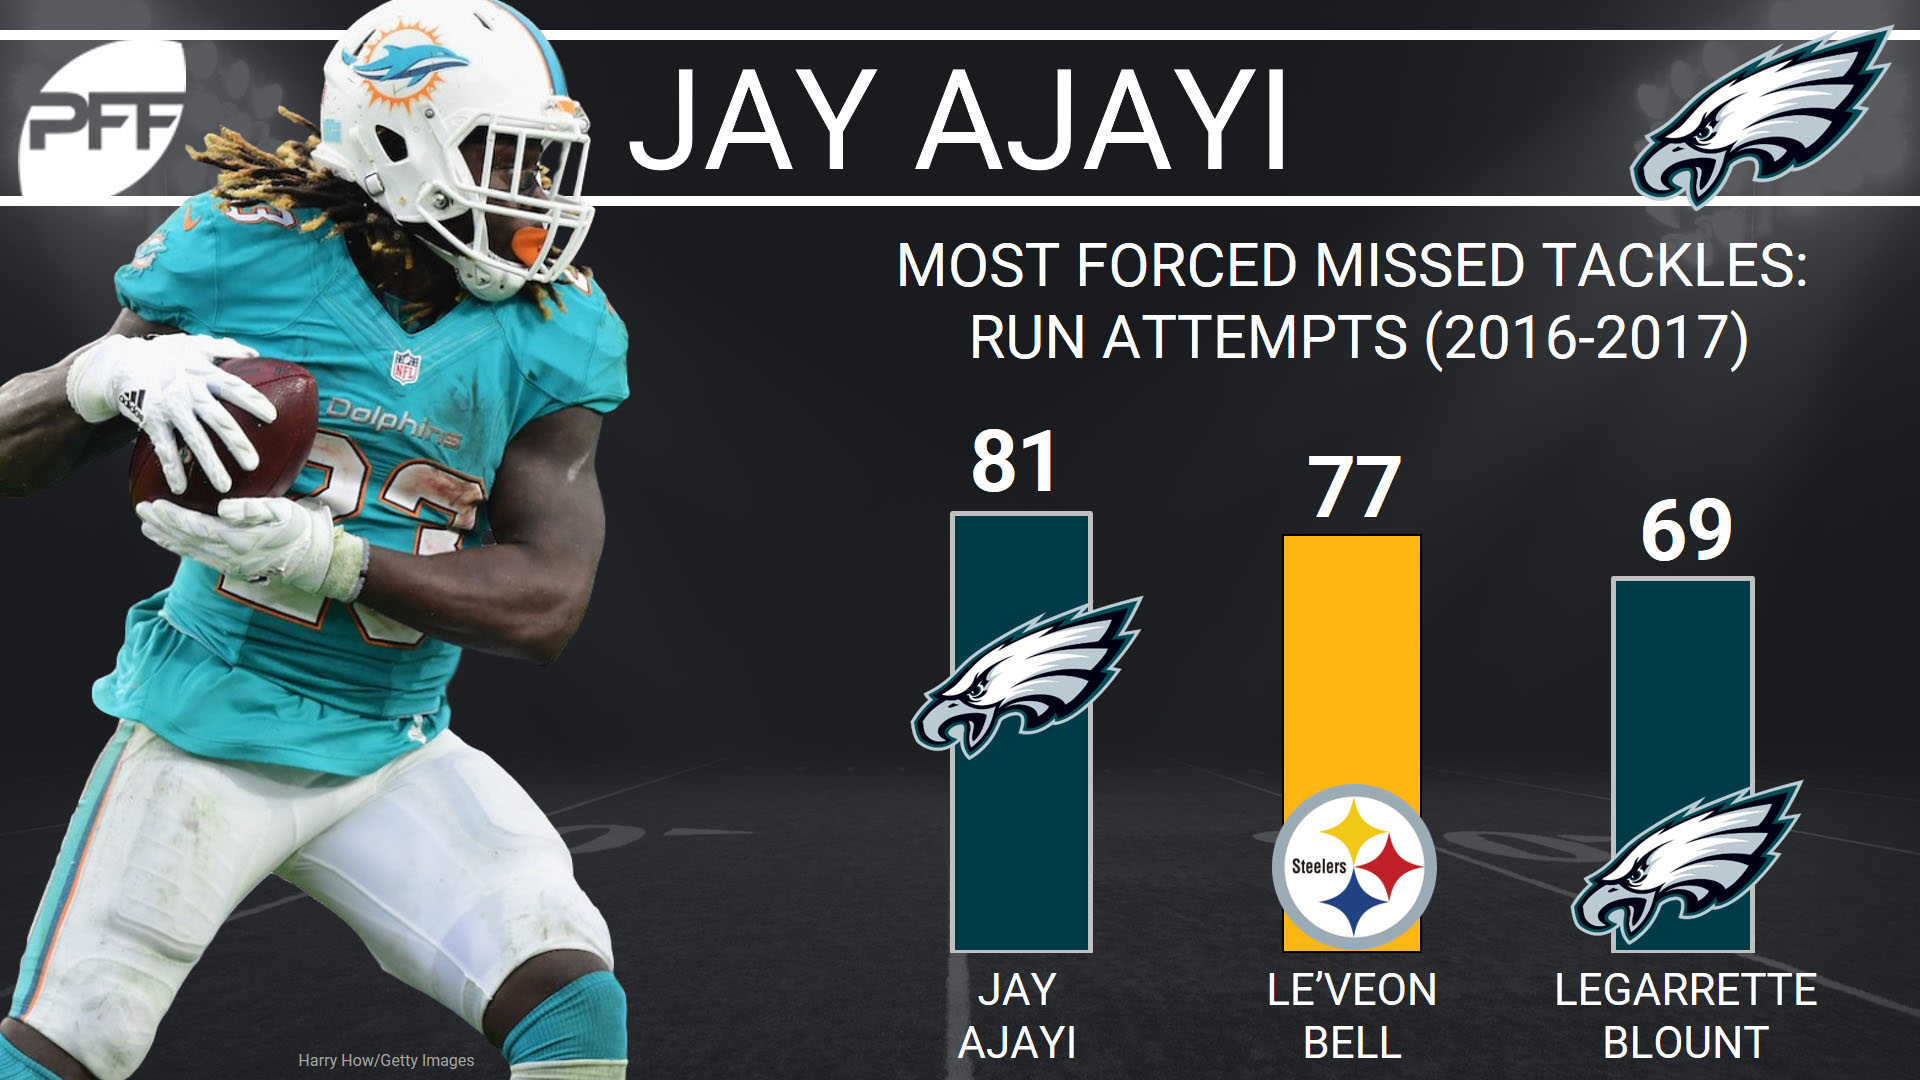 New Philadelphia Eagles RB Jay Ajayi